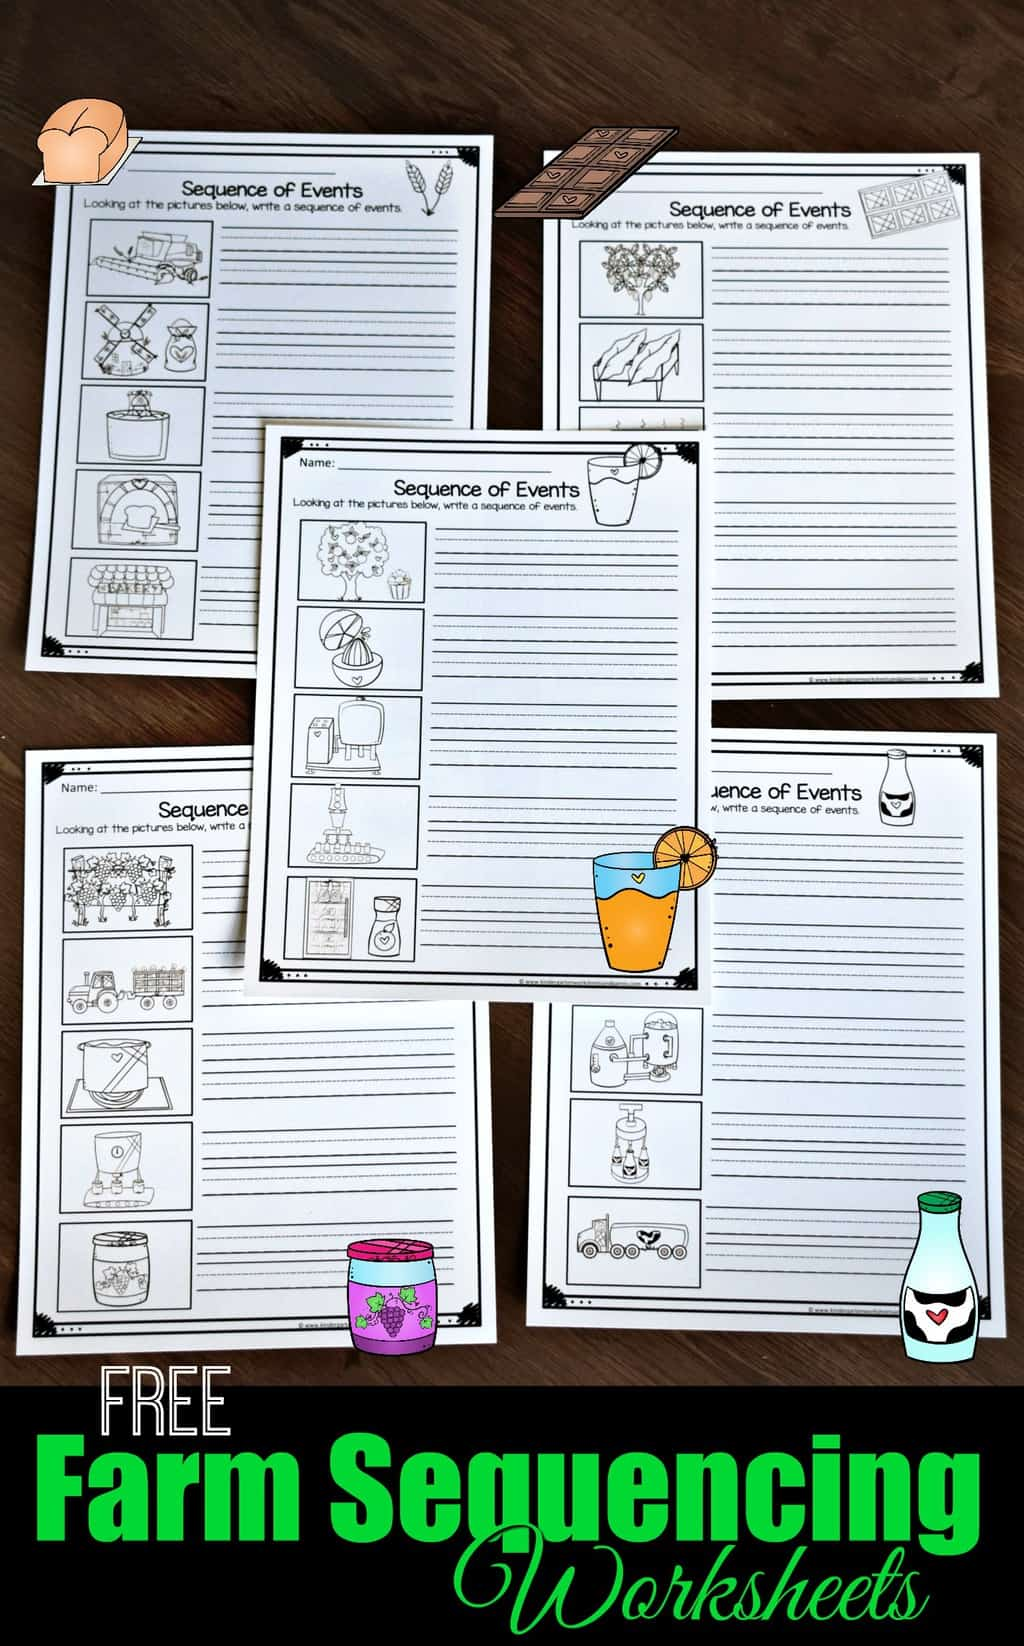 Free Farm Sequencing Worksheets